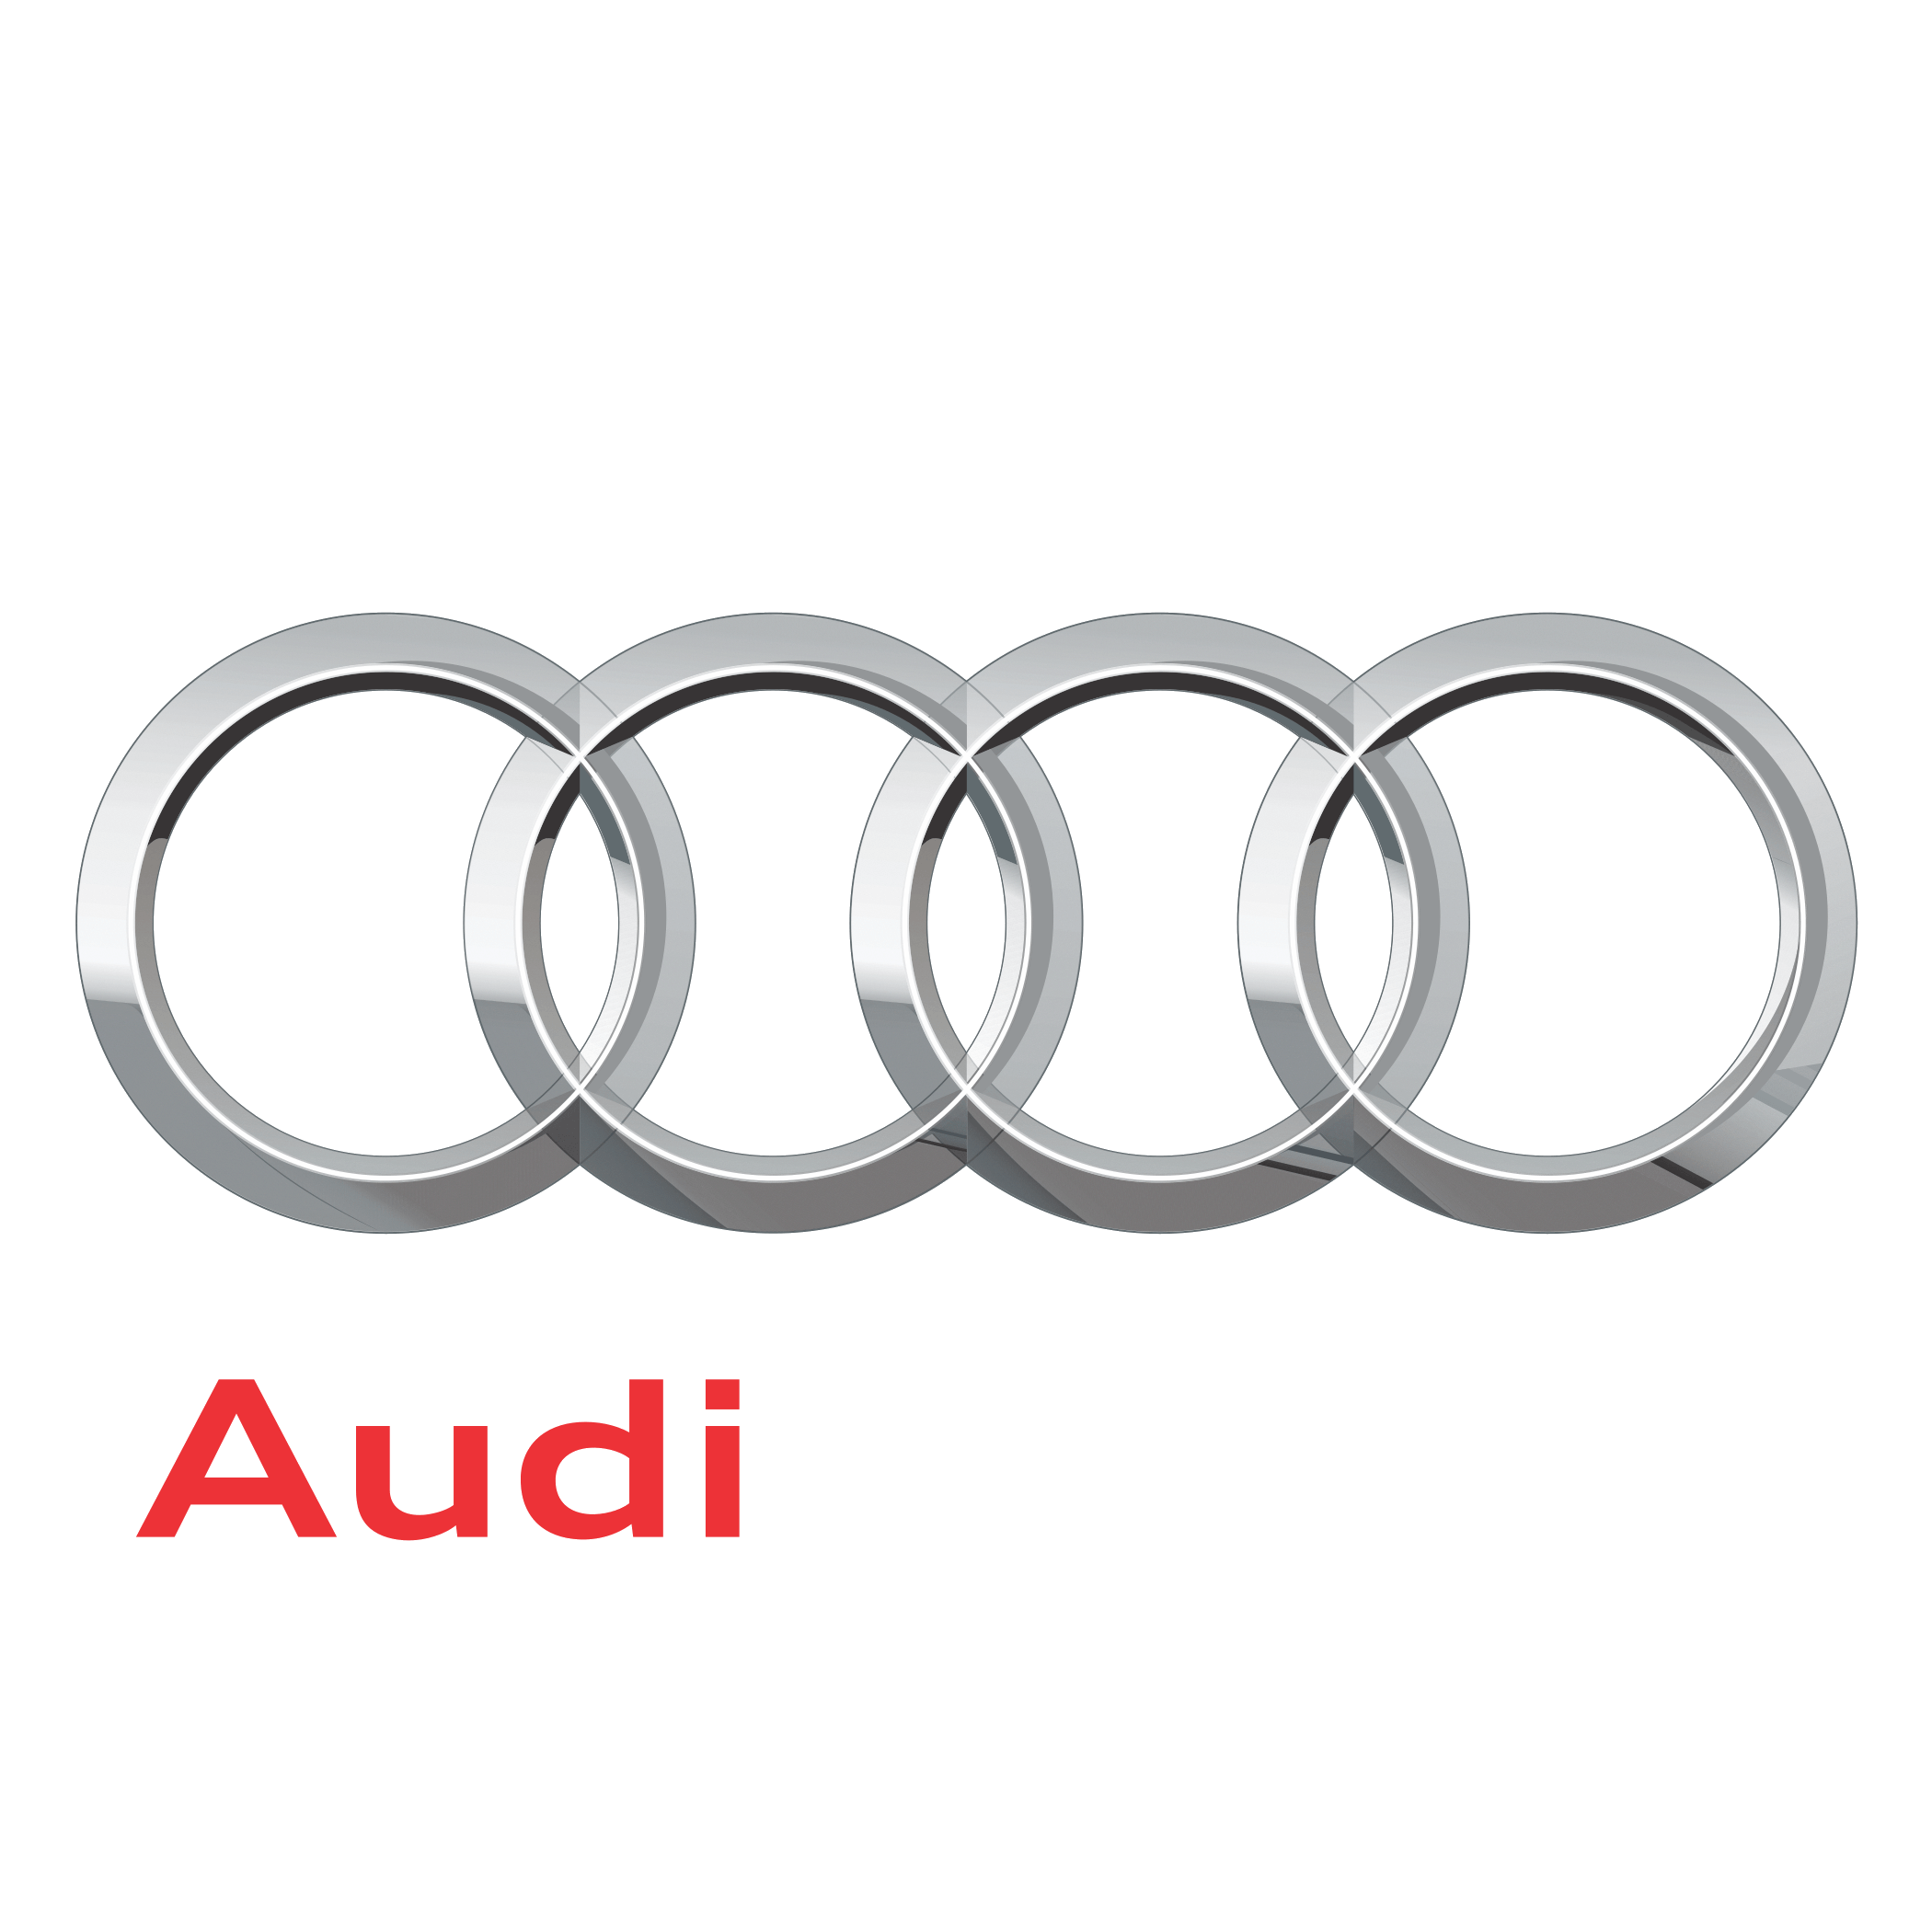 2100x2100 Audi Logo Wallpapers, Pictures, Images